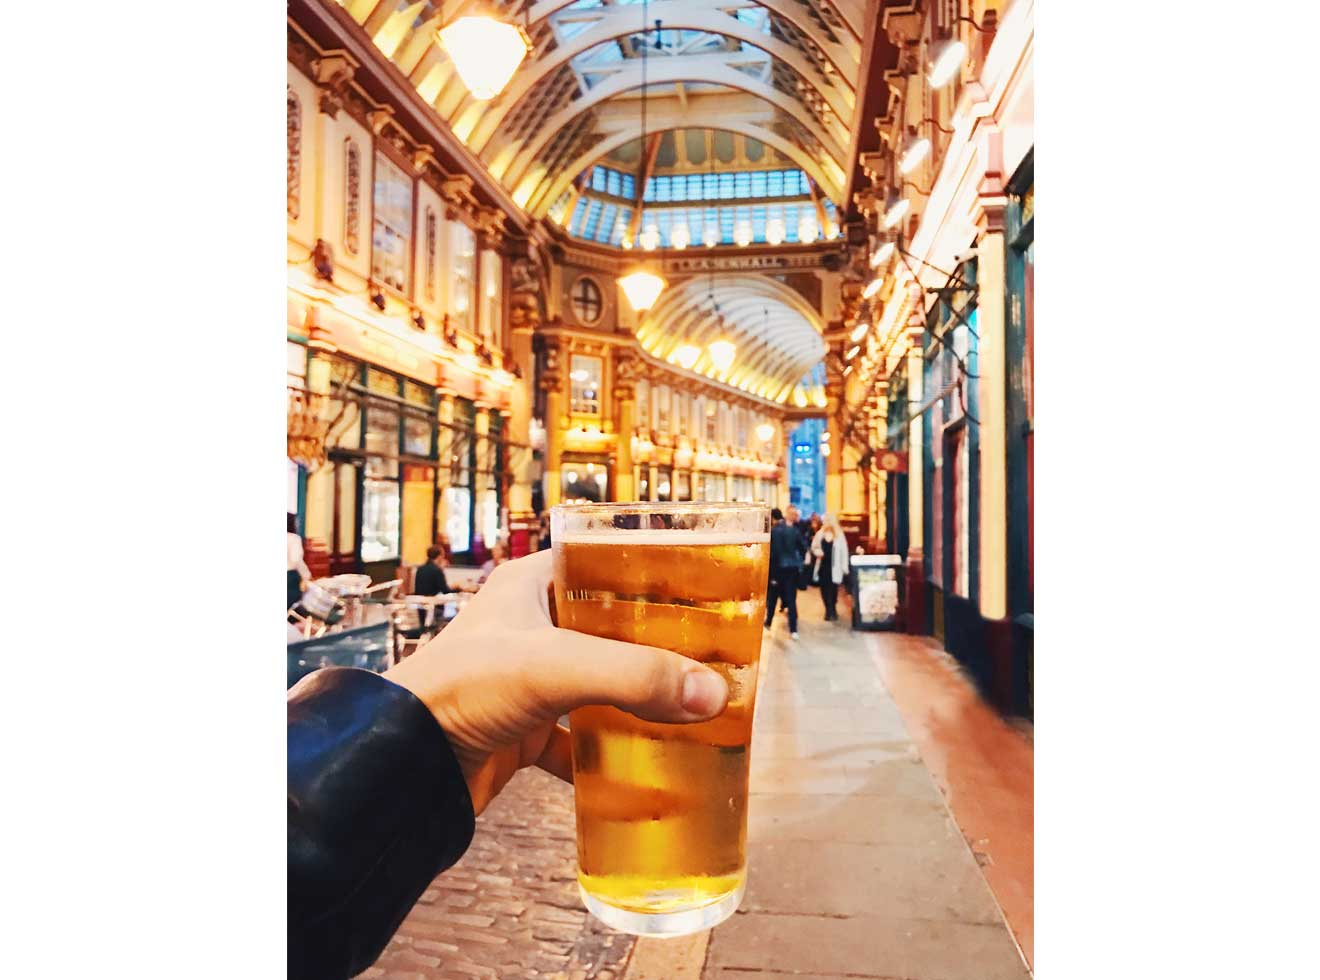 Drinking beer in Leadenhall Market in London